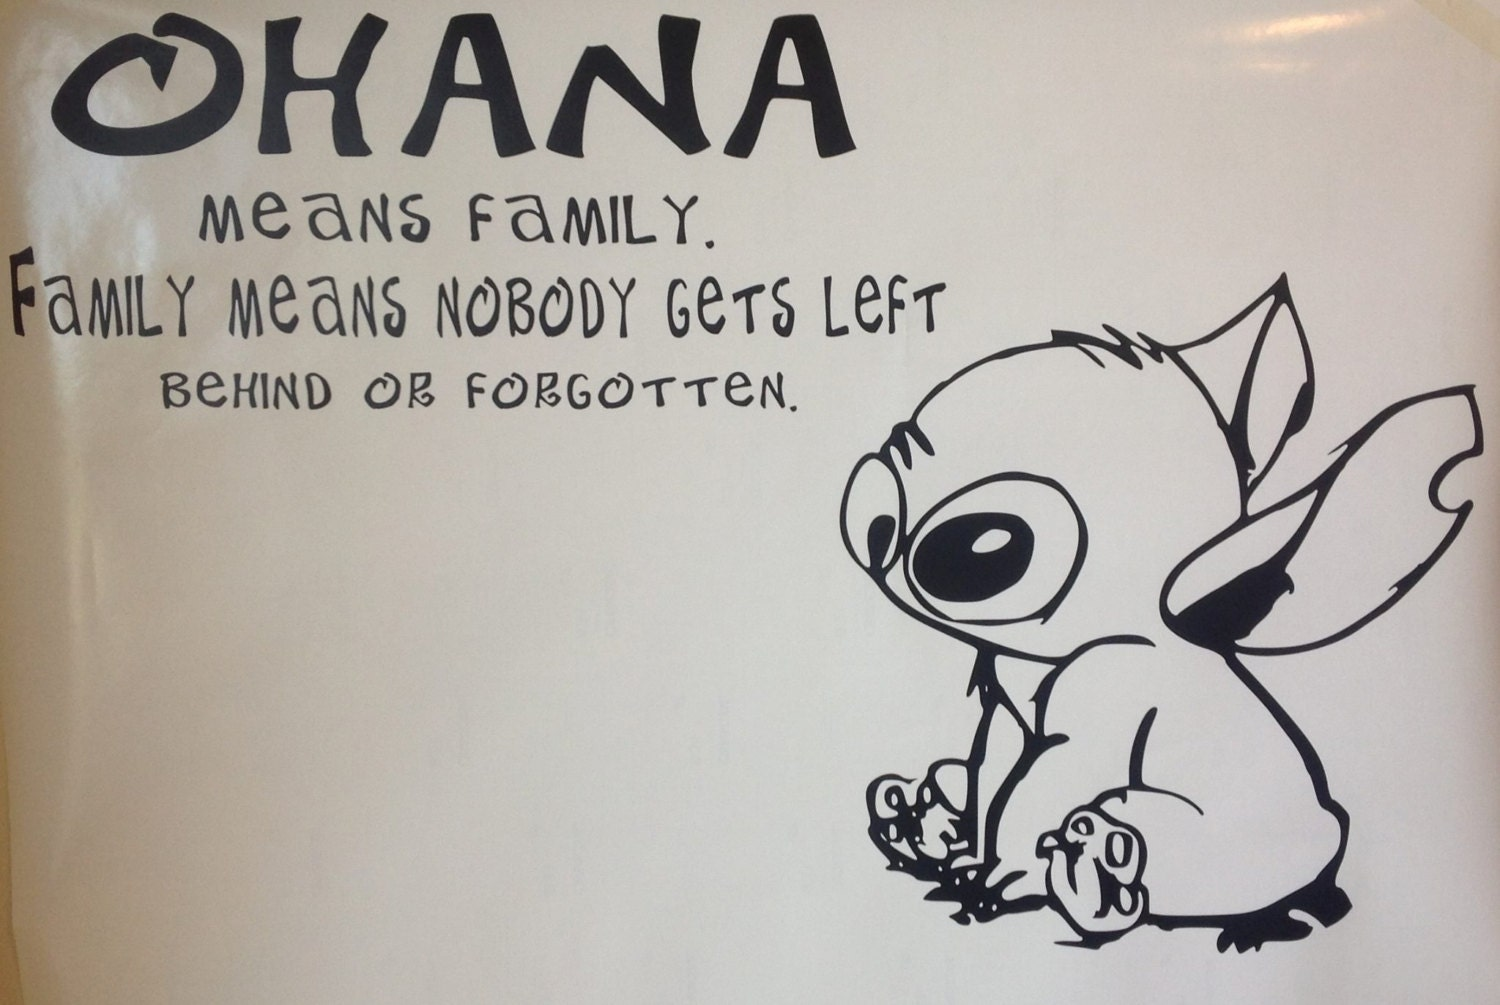 stitch ohana quote wallpaper - photo #16